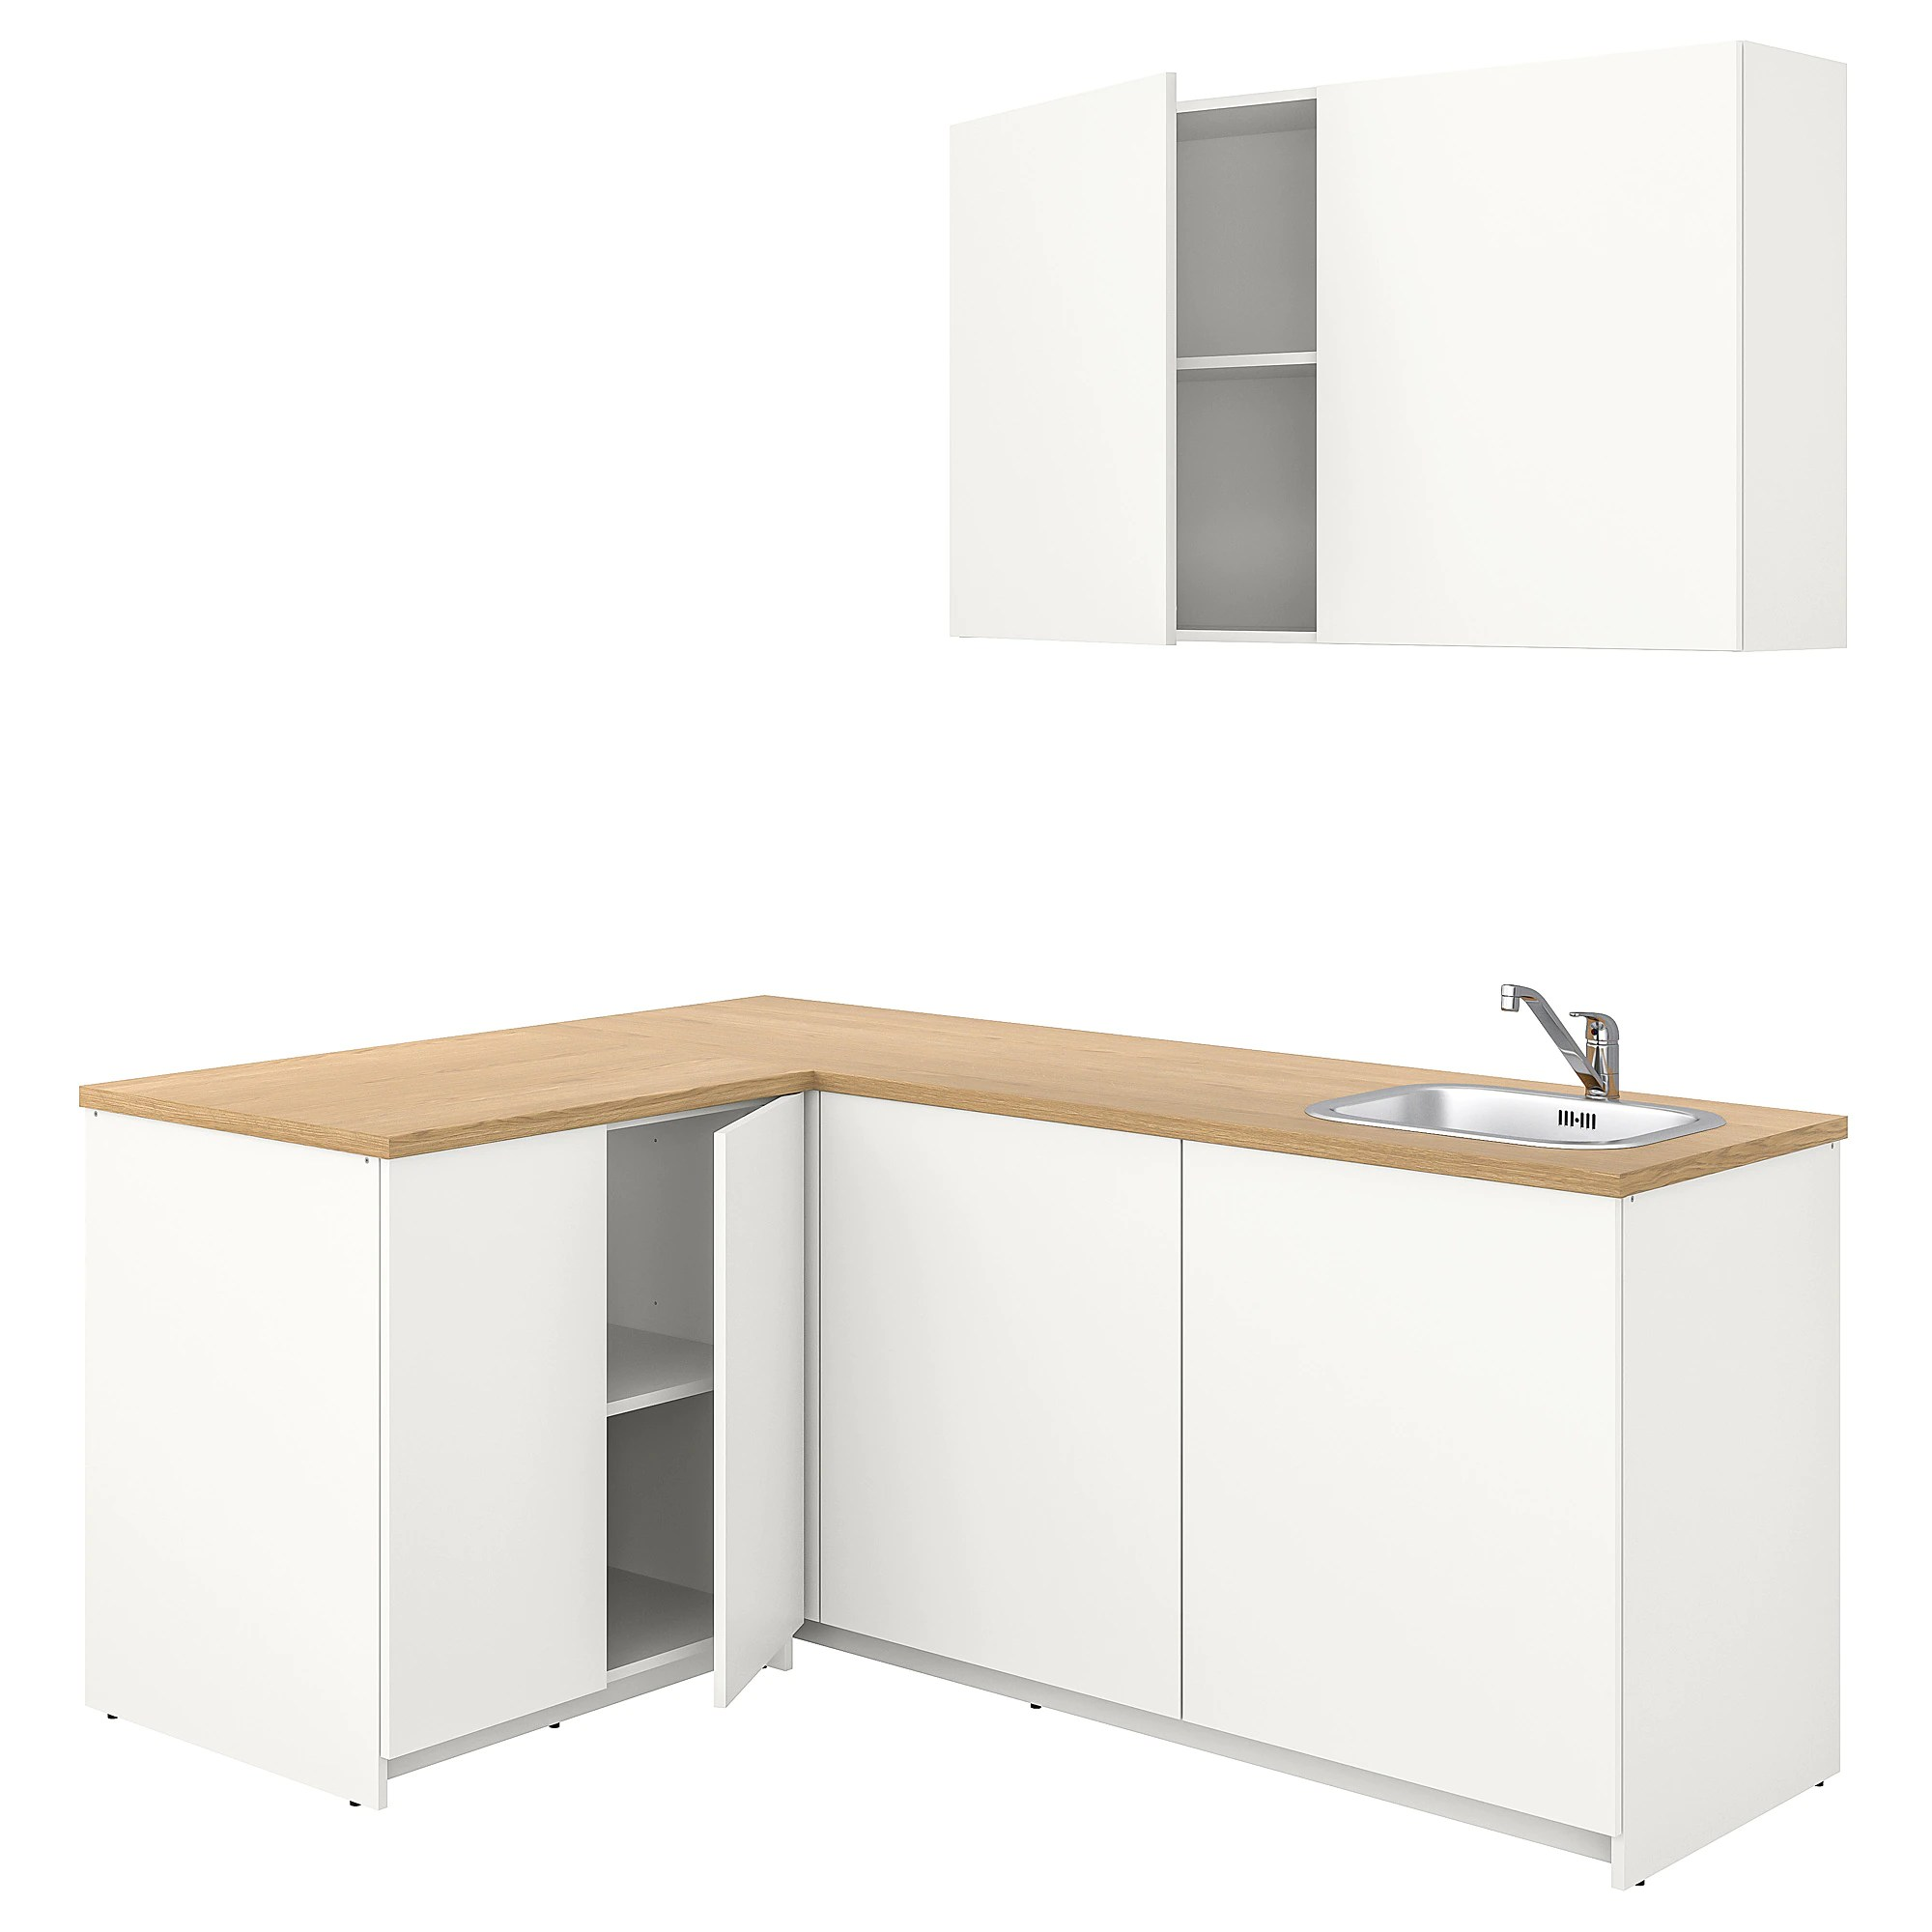 Ikea Faktum Assembly Instructions Kitchen Knoxhult White